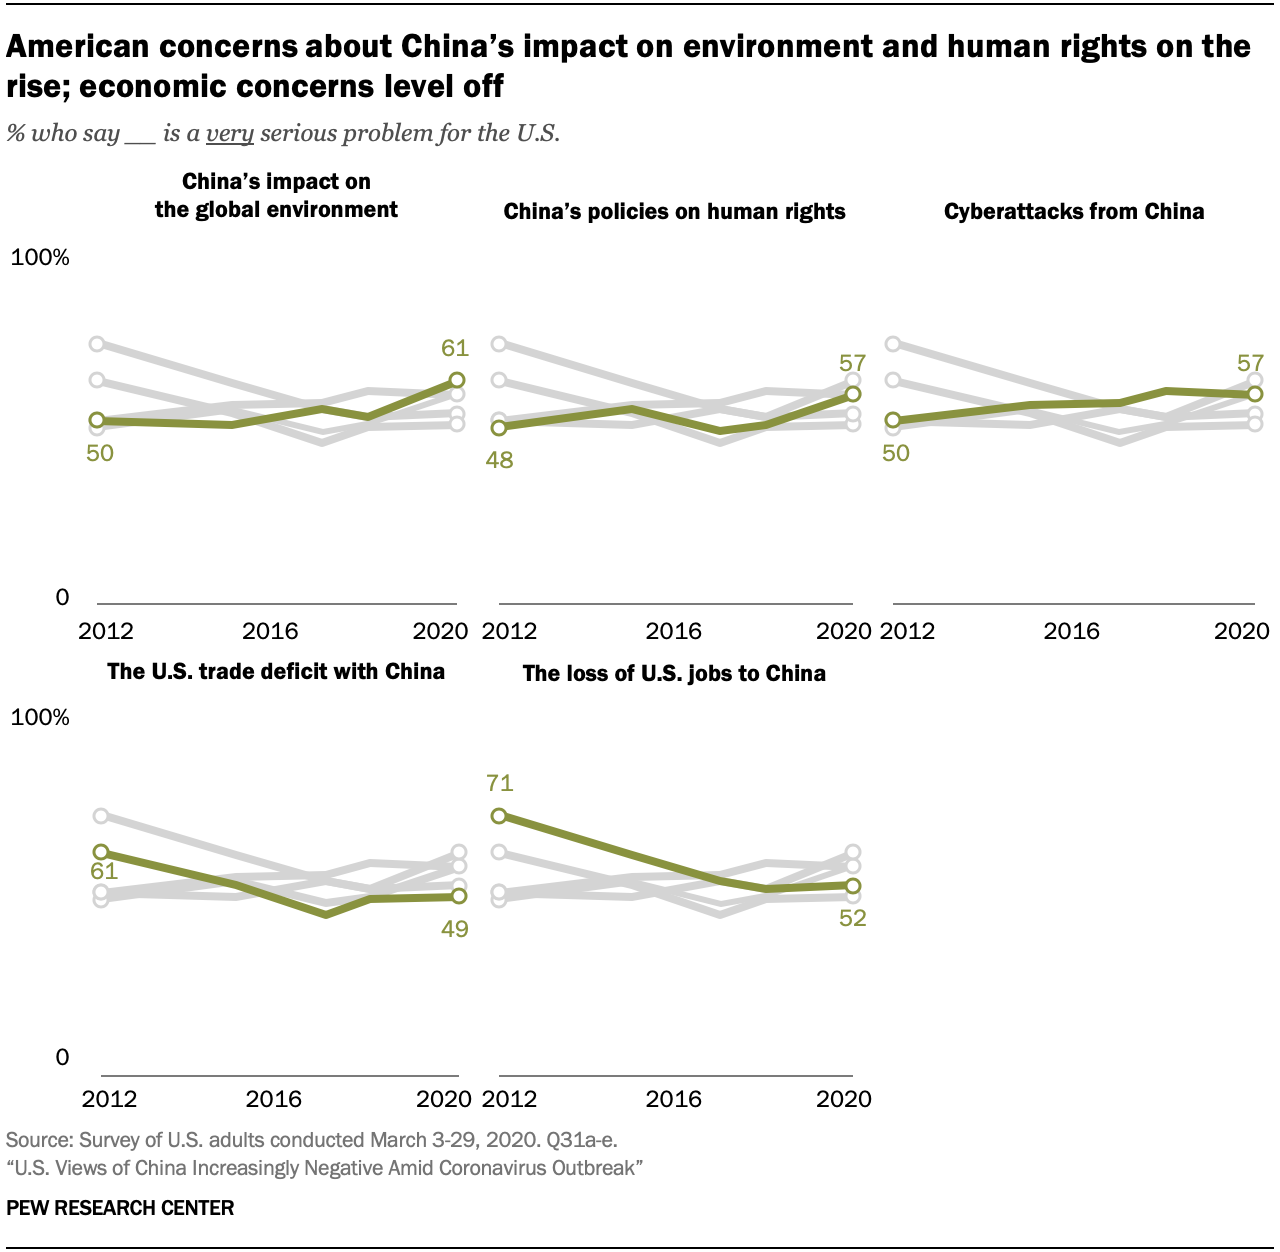 A chart showing American concerns about China's impact on environment and human rights on the rise; economic concerns level off